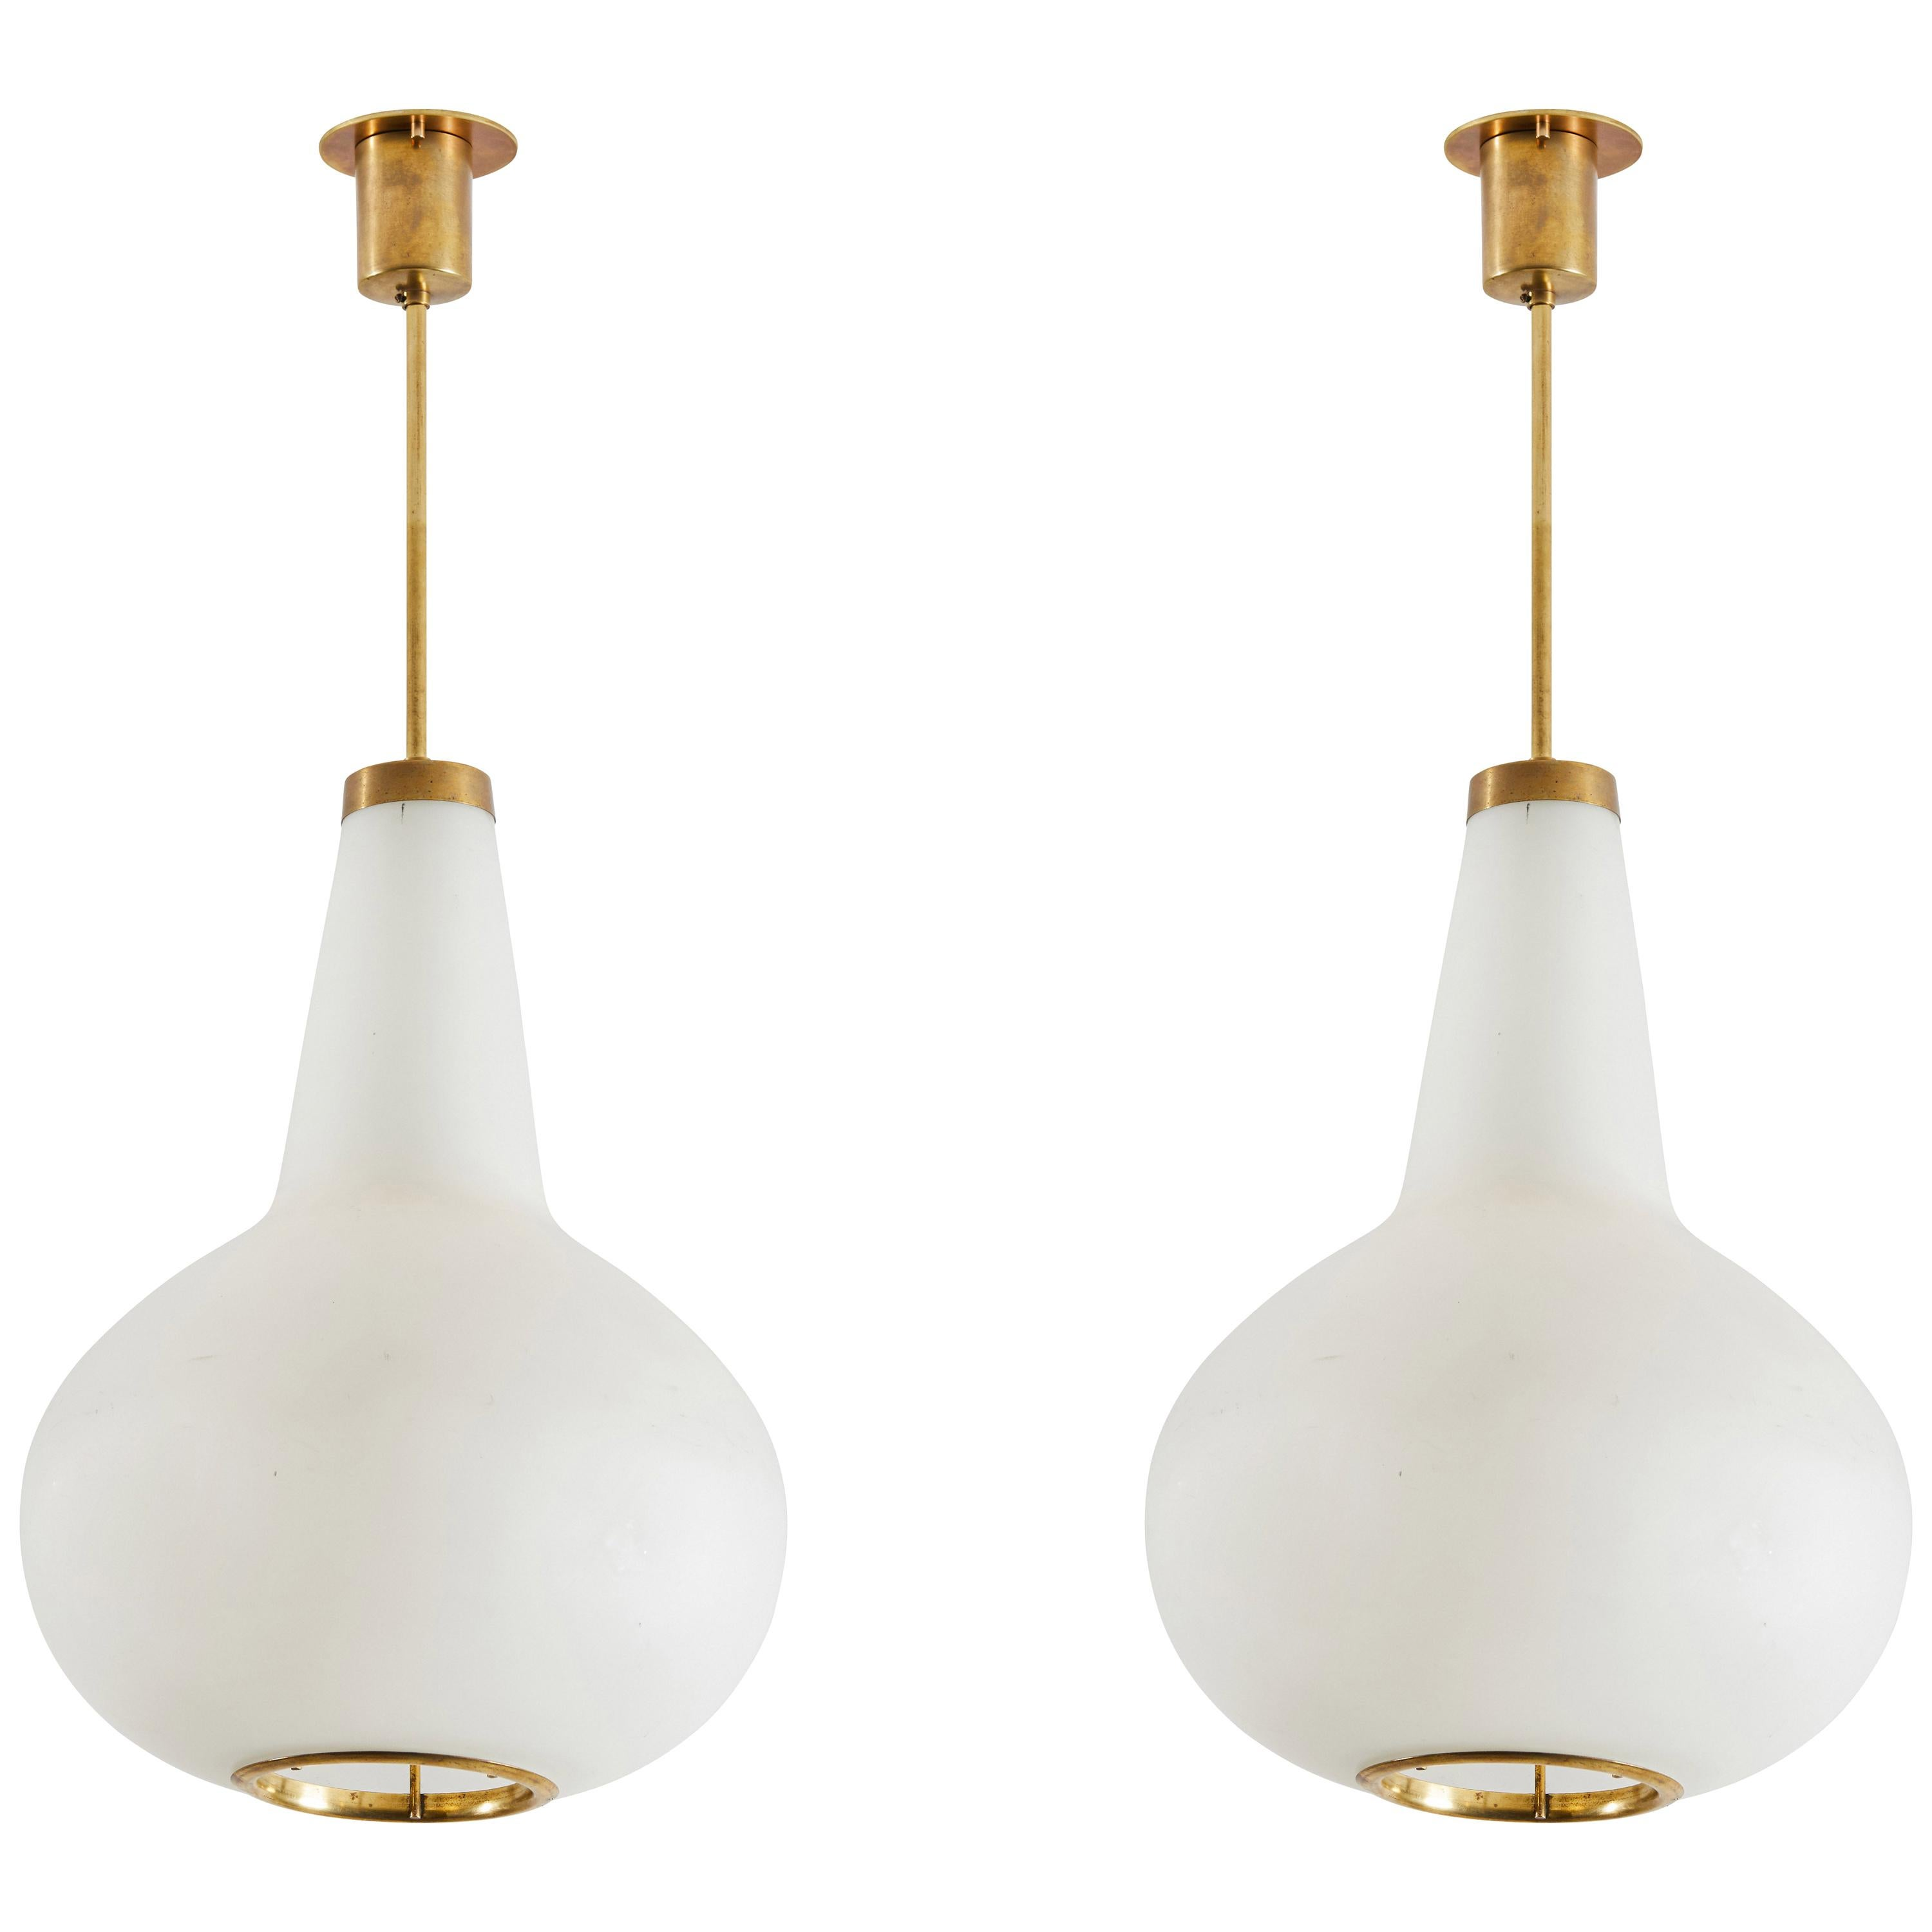 Two Suspension Lights by Max Ingrand for Fontana Arte